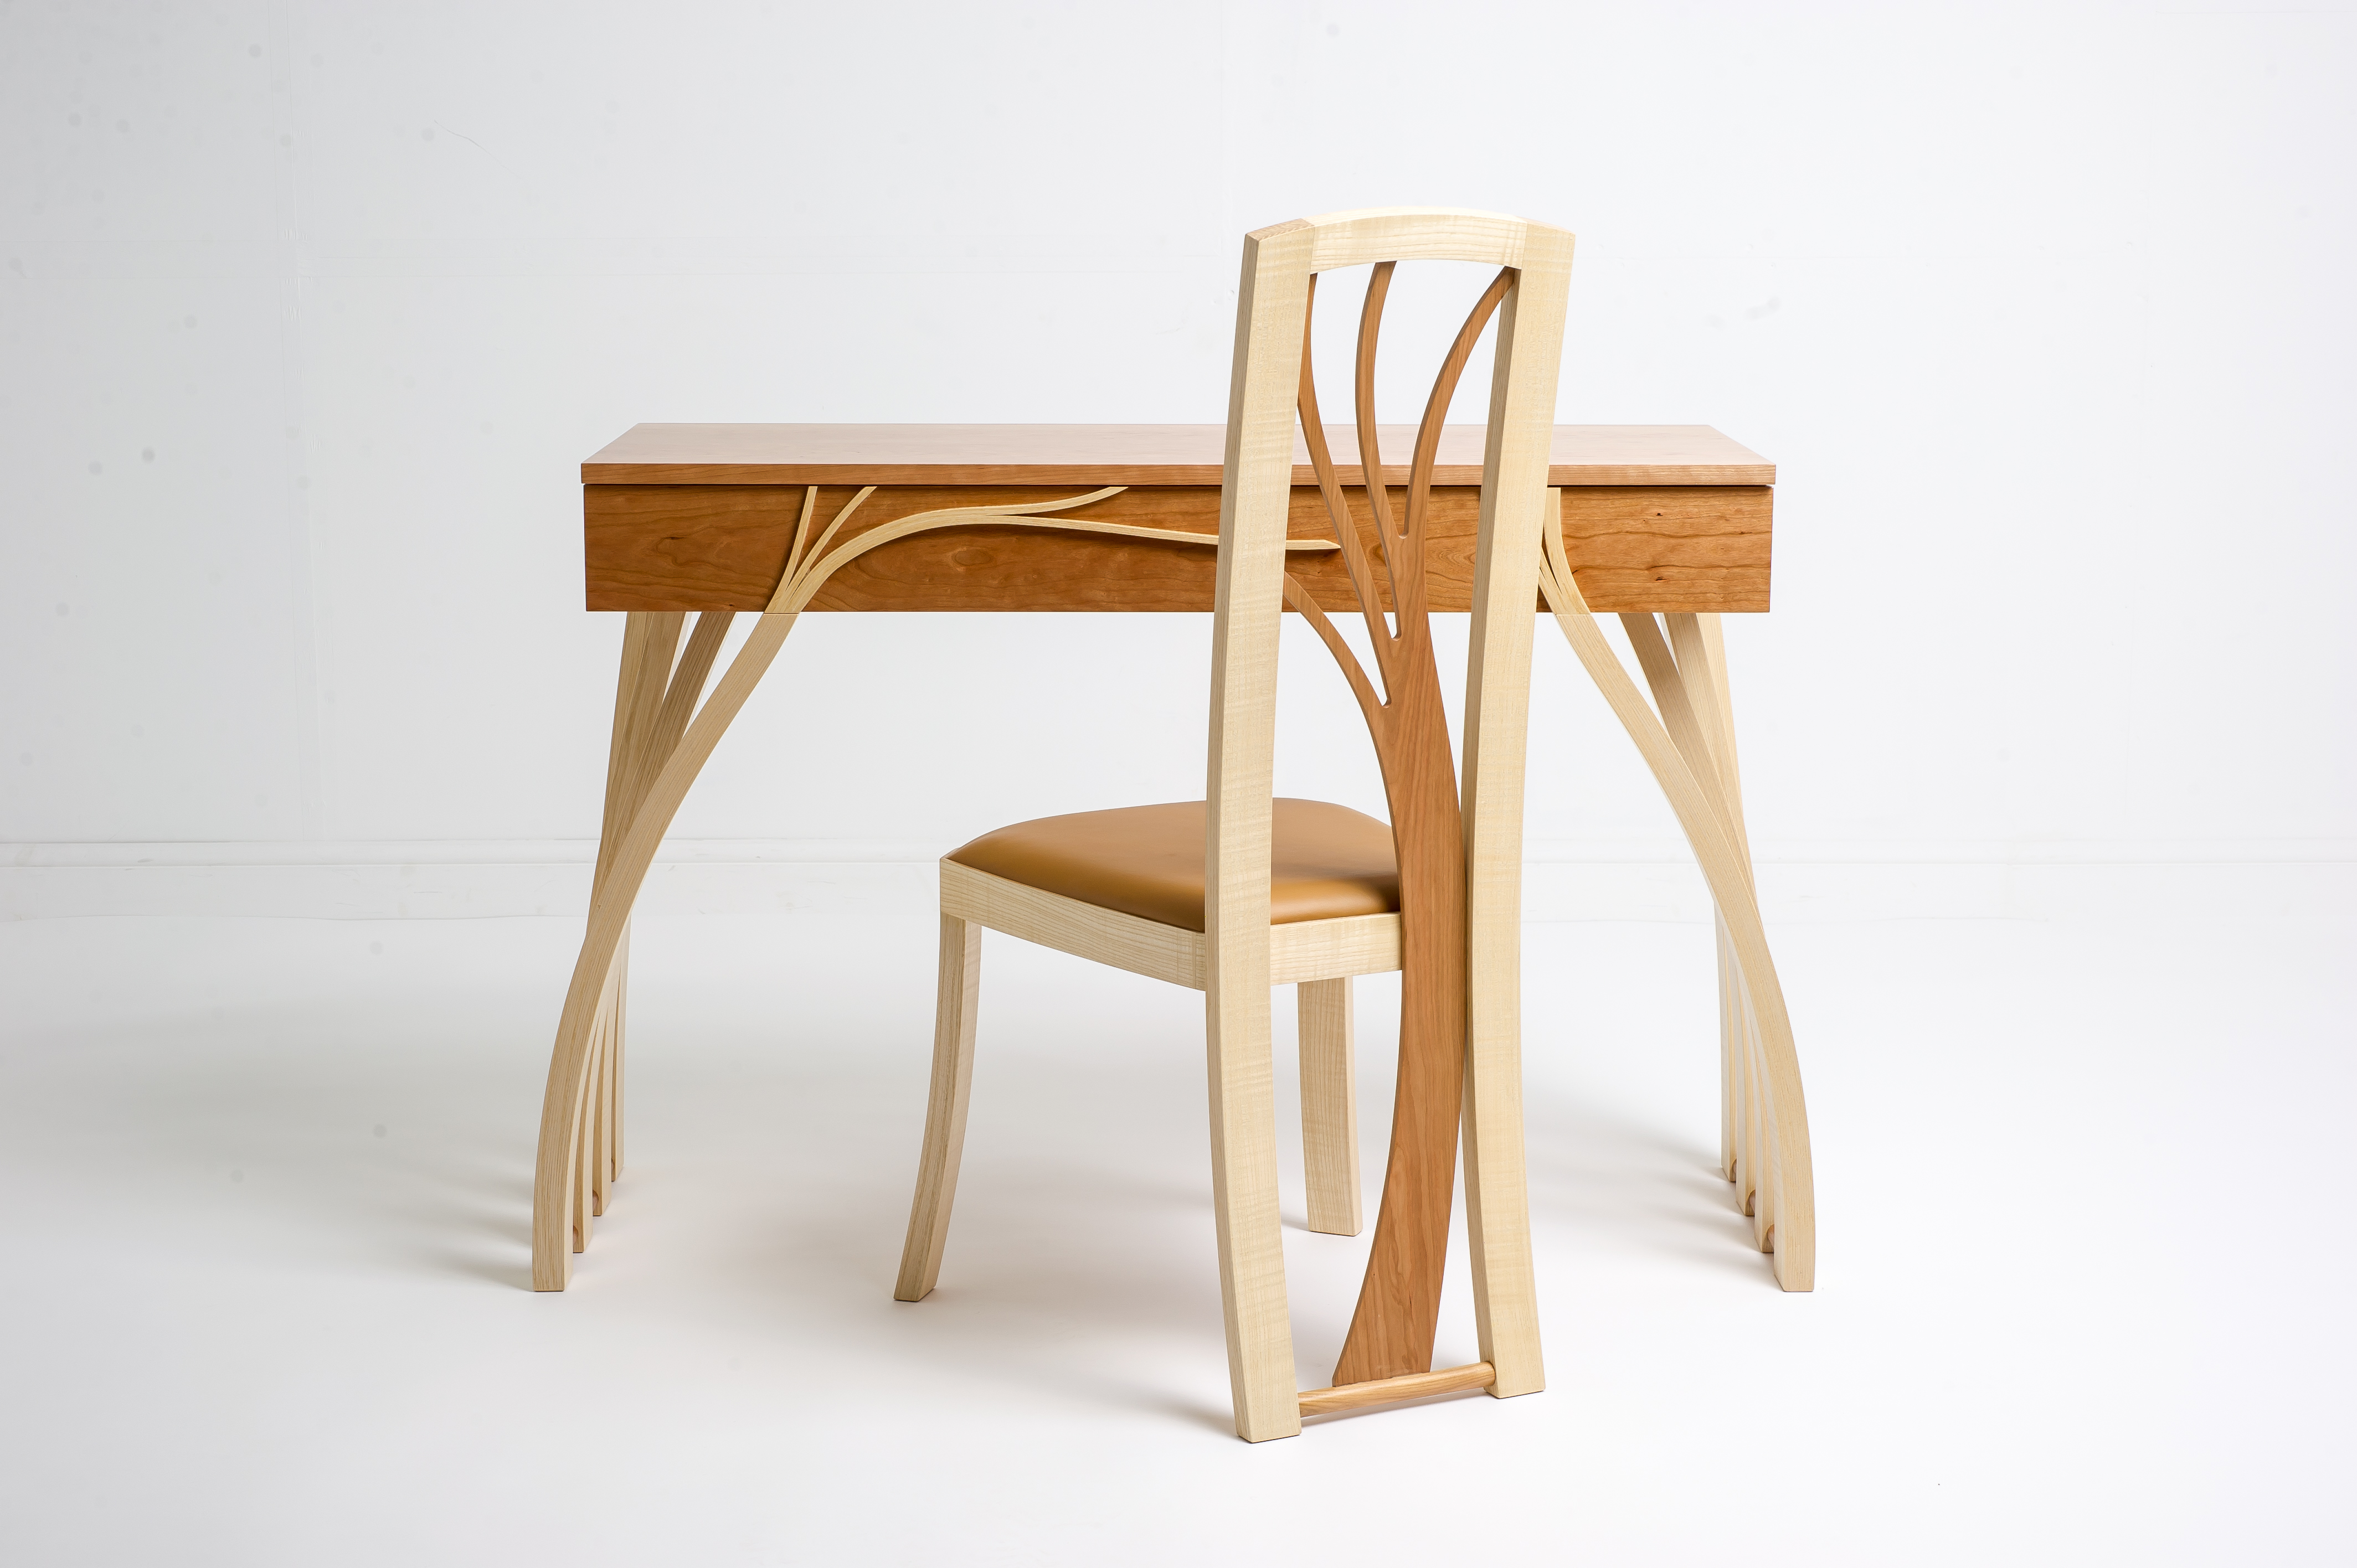 Grizedale table and chair